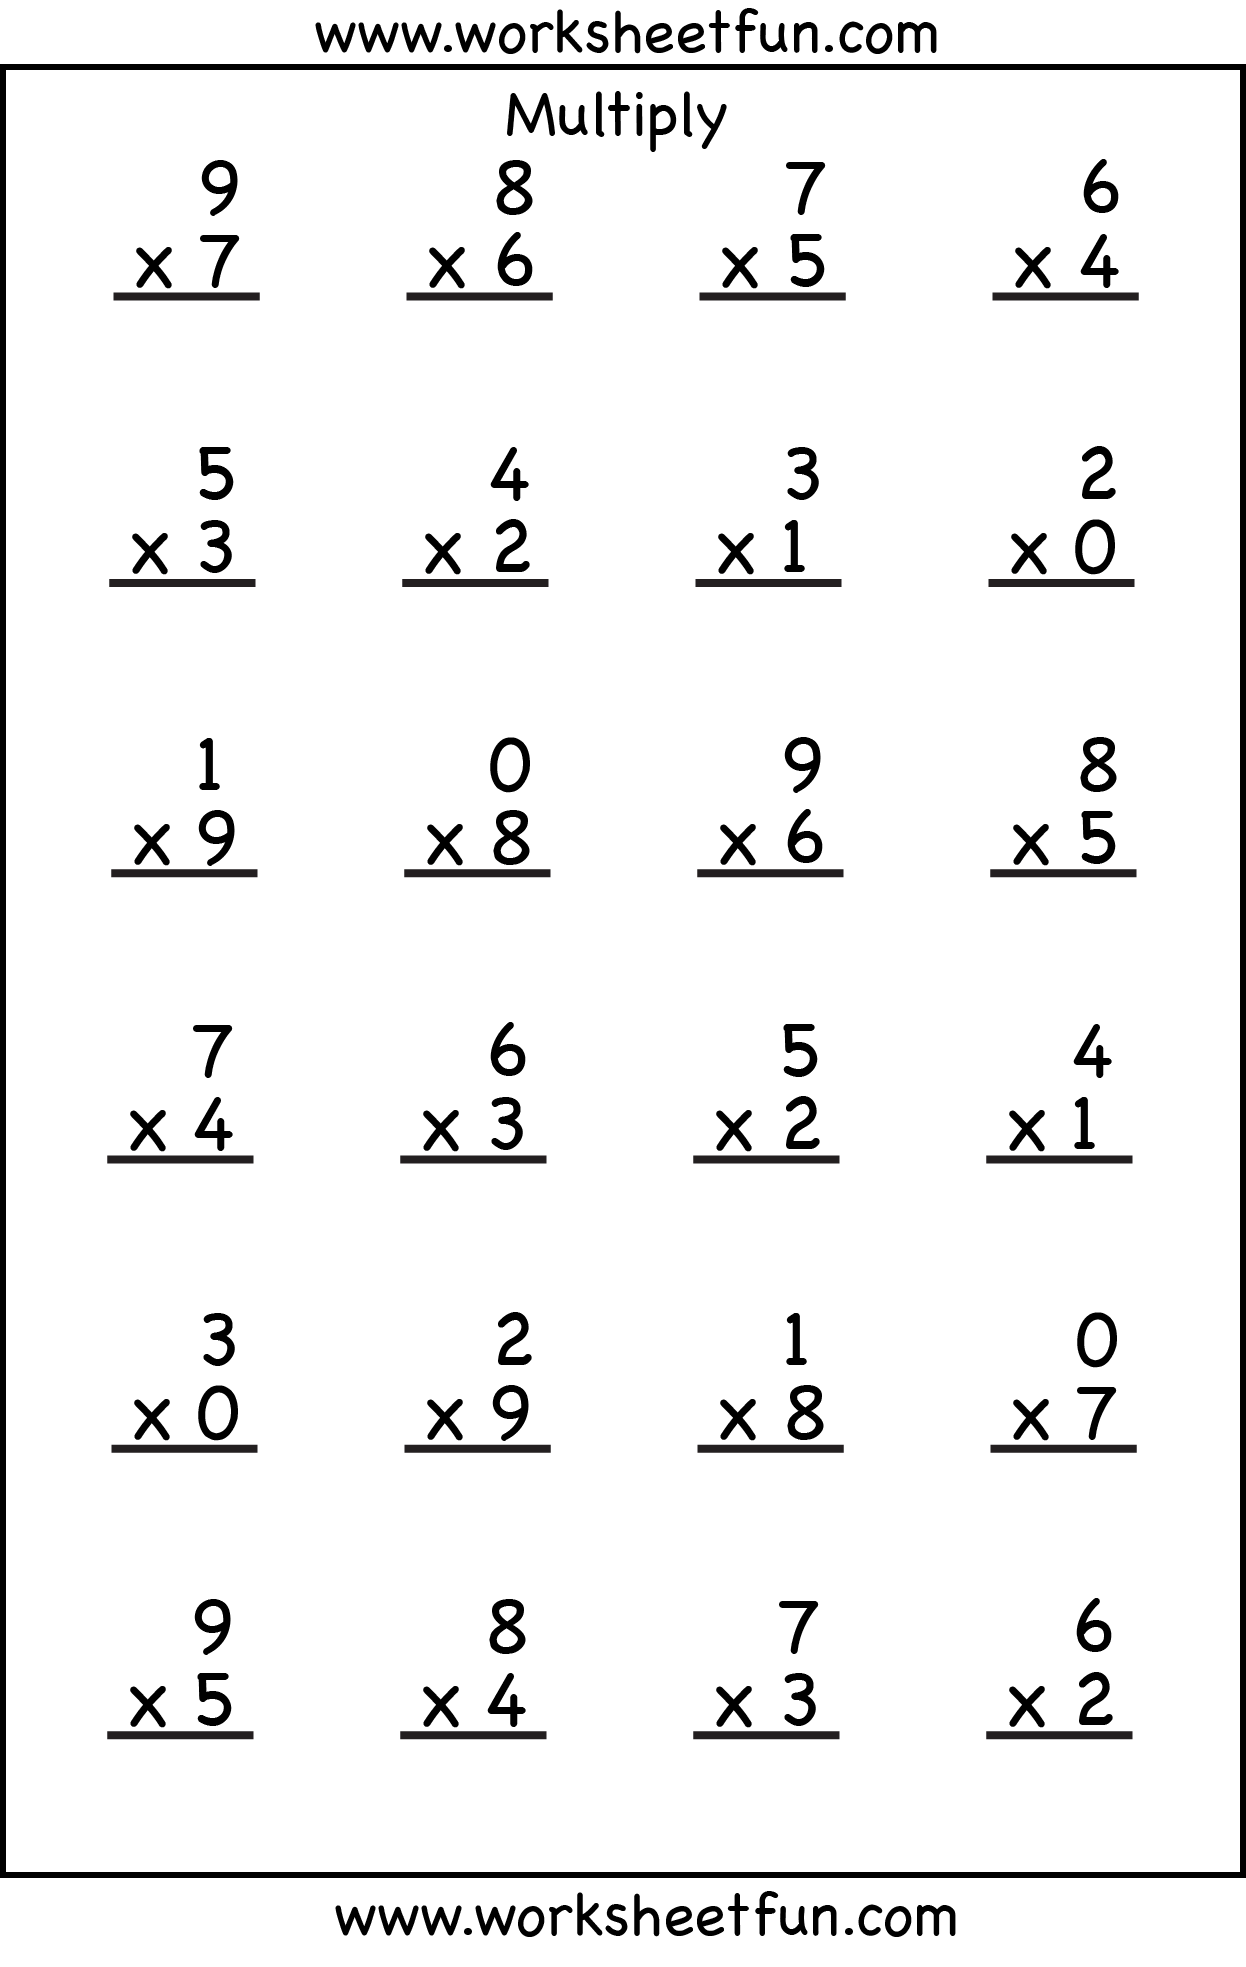 ... By 5 And 2 Worksheet. on multiplication and division worksheet grade 6